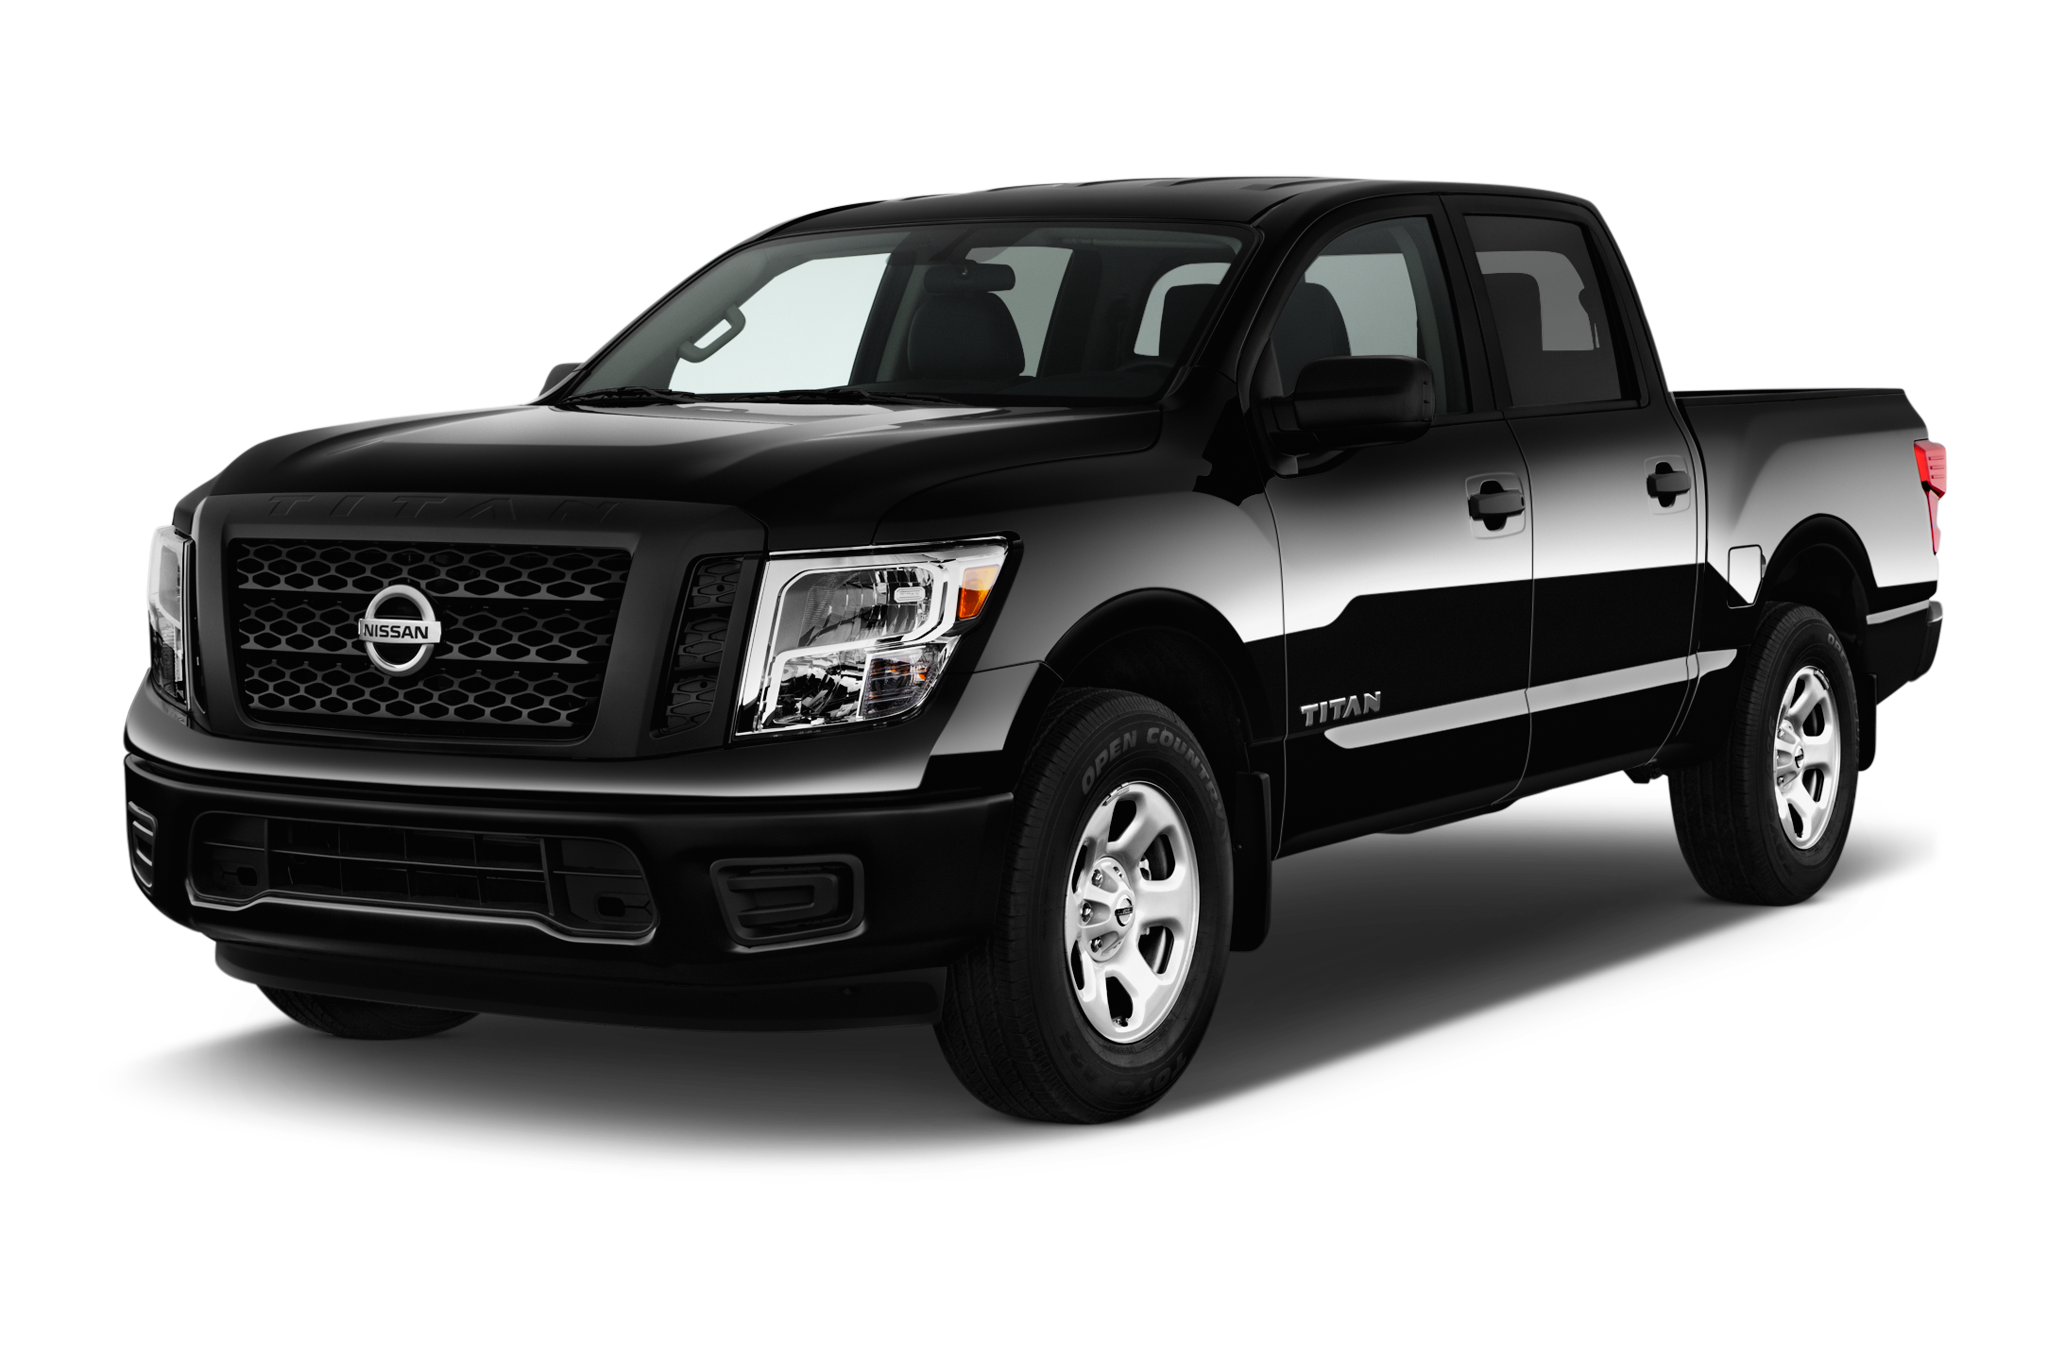 nissan titan 2018. Black Bedroom Furniture Sets. Home Design Ideas